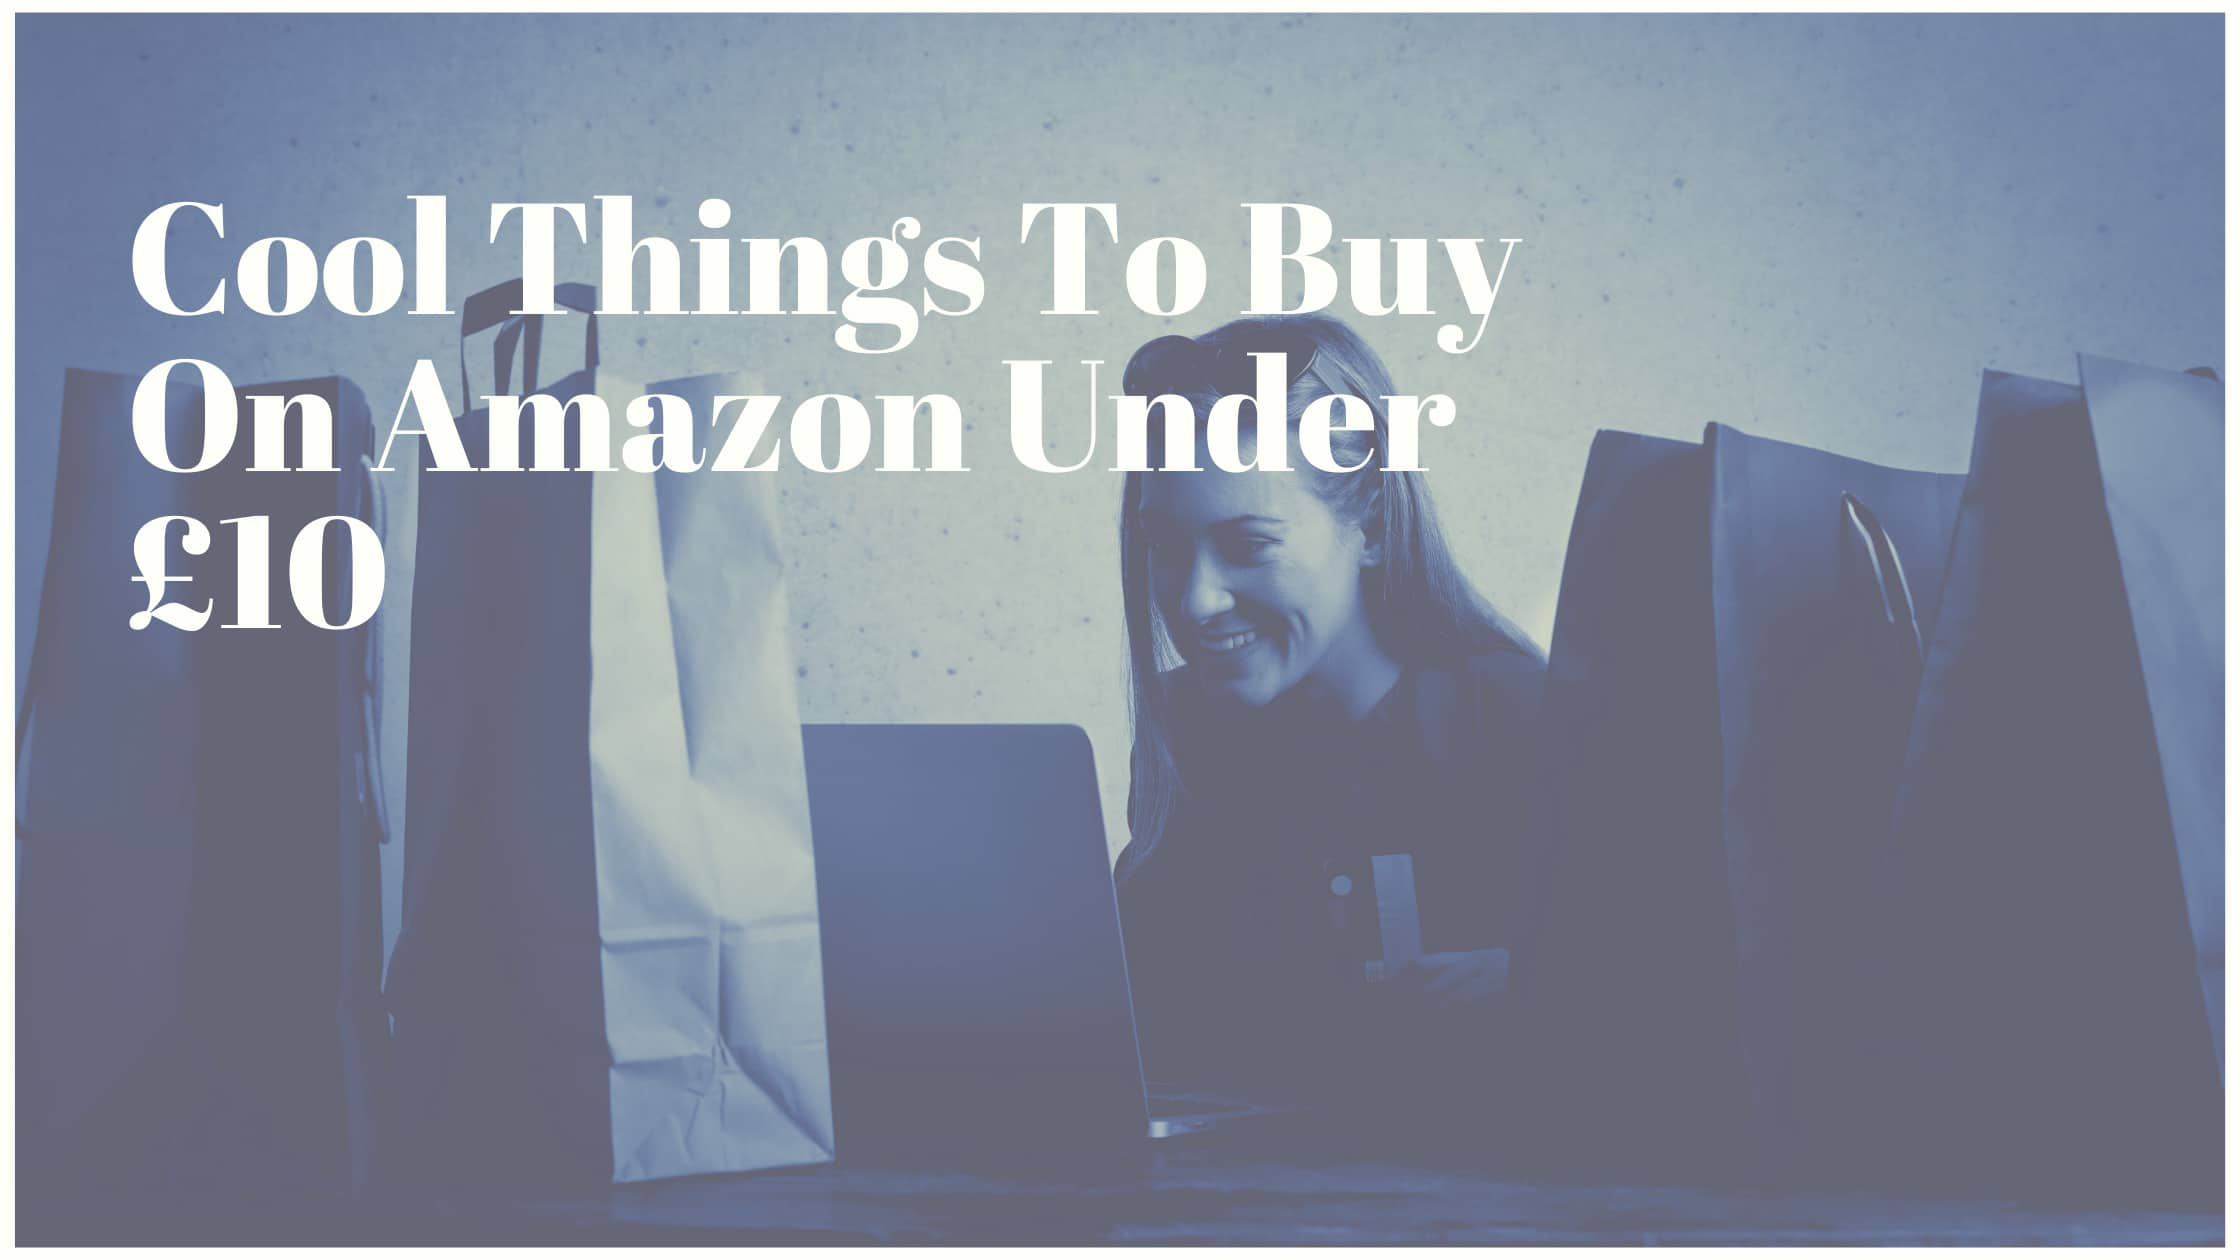 Cool Things To Buy On Amazon Under £10